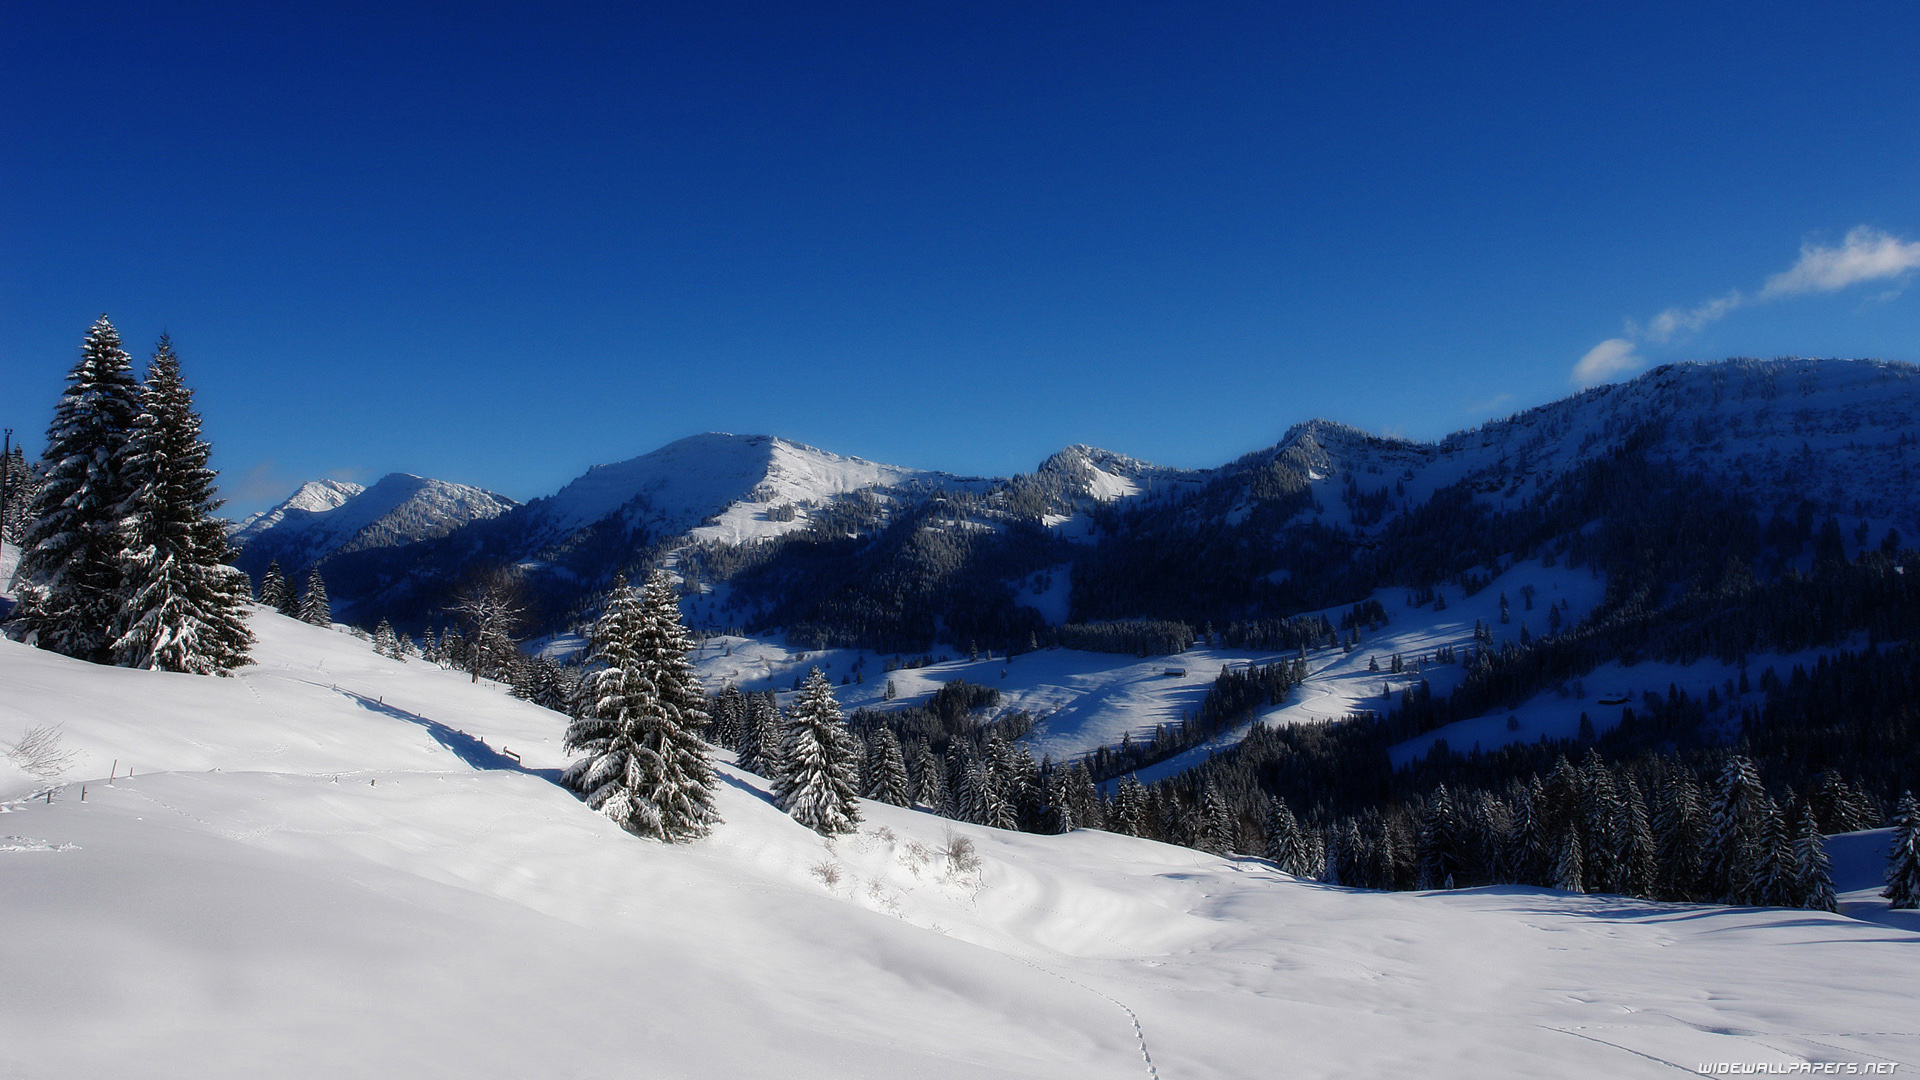 Winter Wide Wallpapers And Hd Wallpapers - Blue Sky Snowy Mountains , HD Wallpaper & Backgrounds